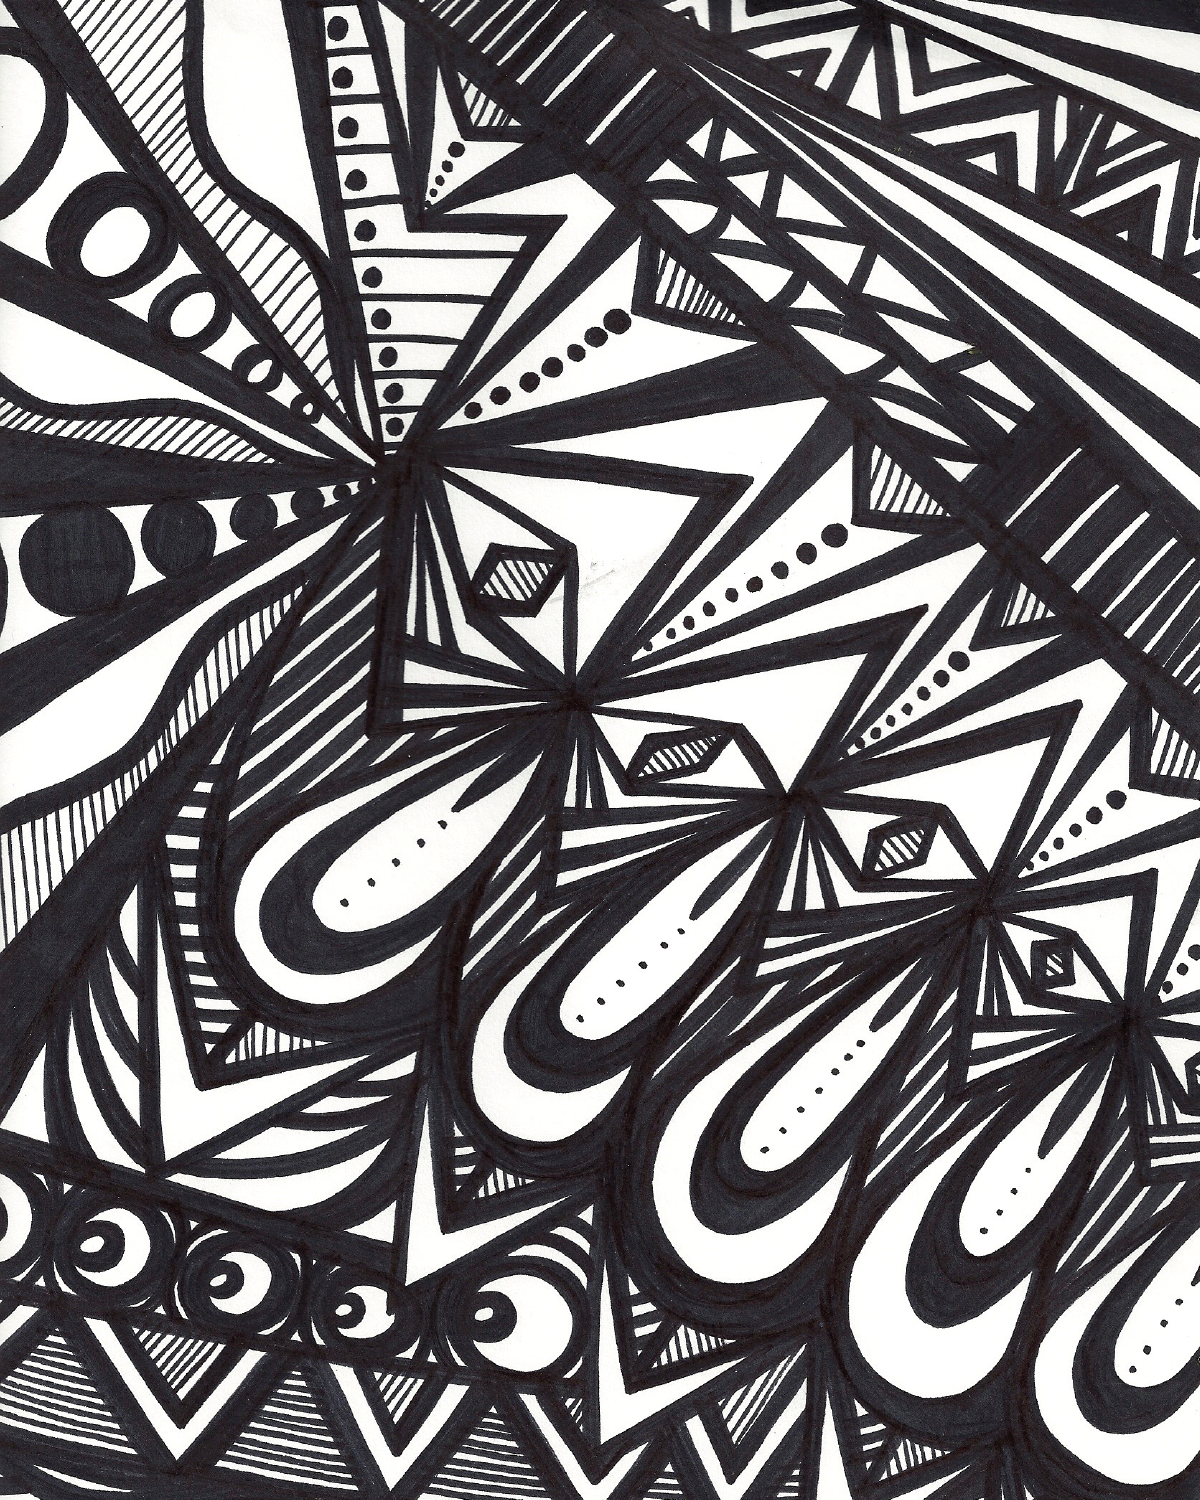 sharpies-06.png